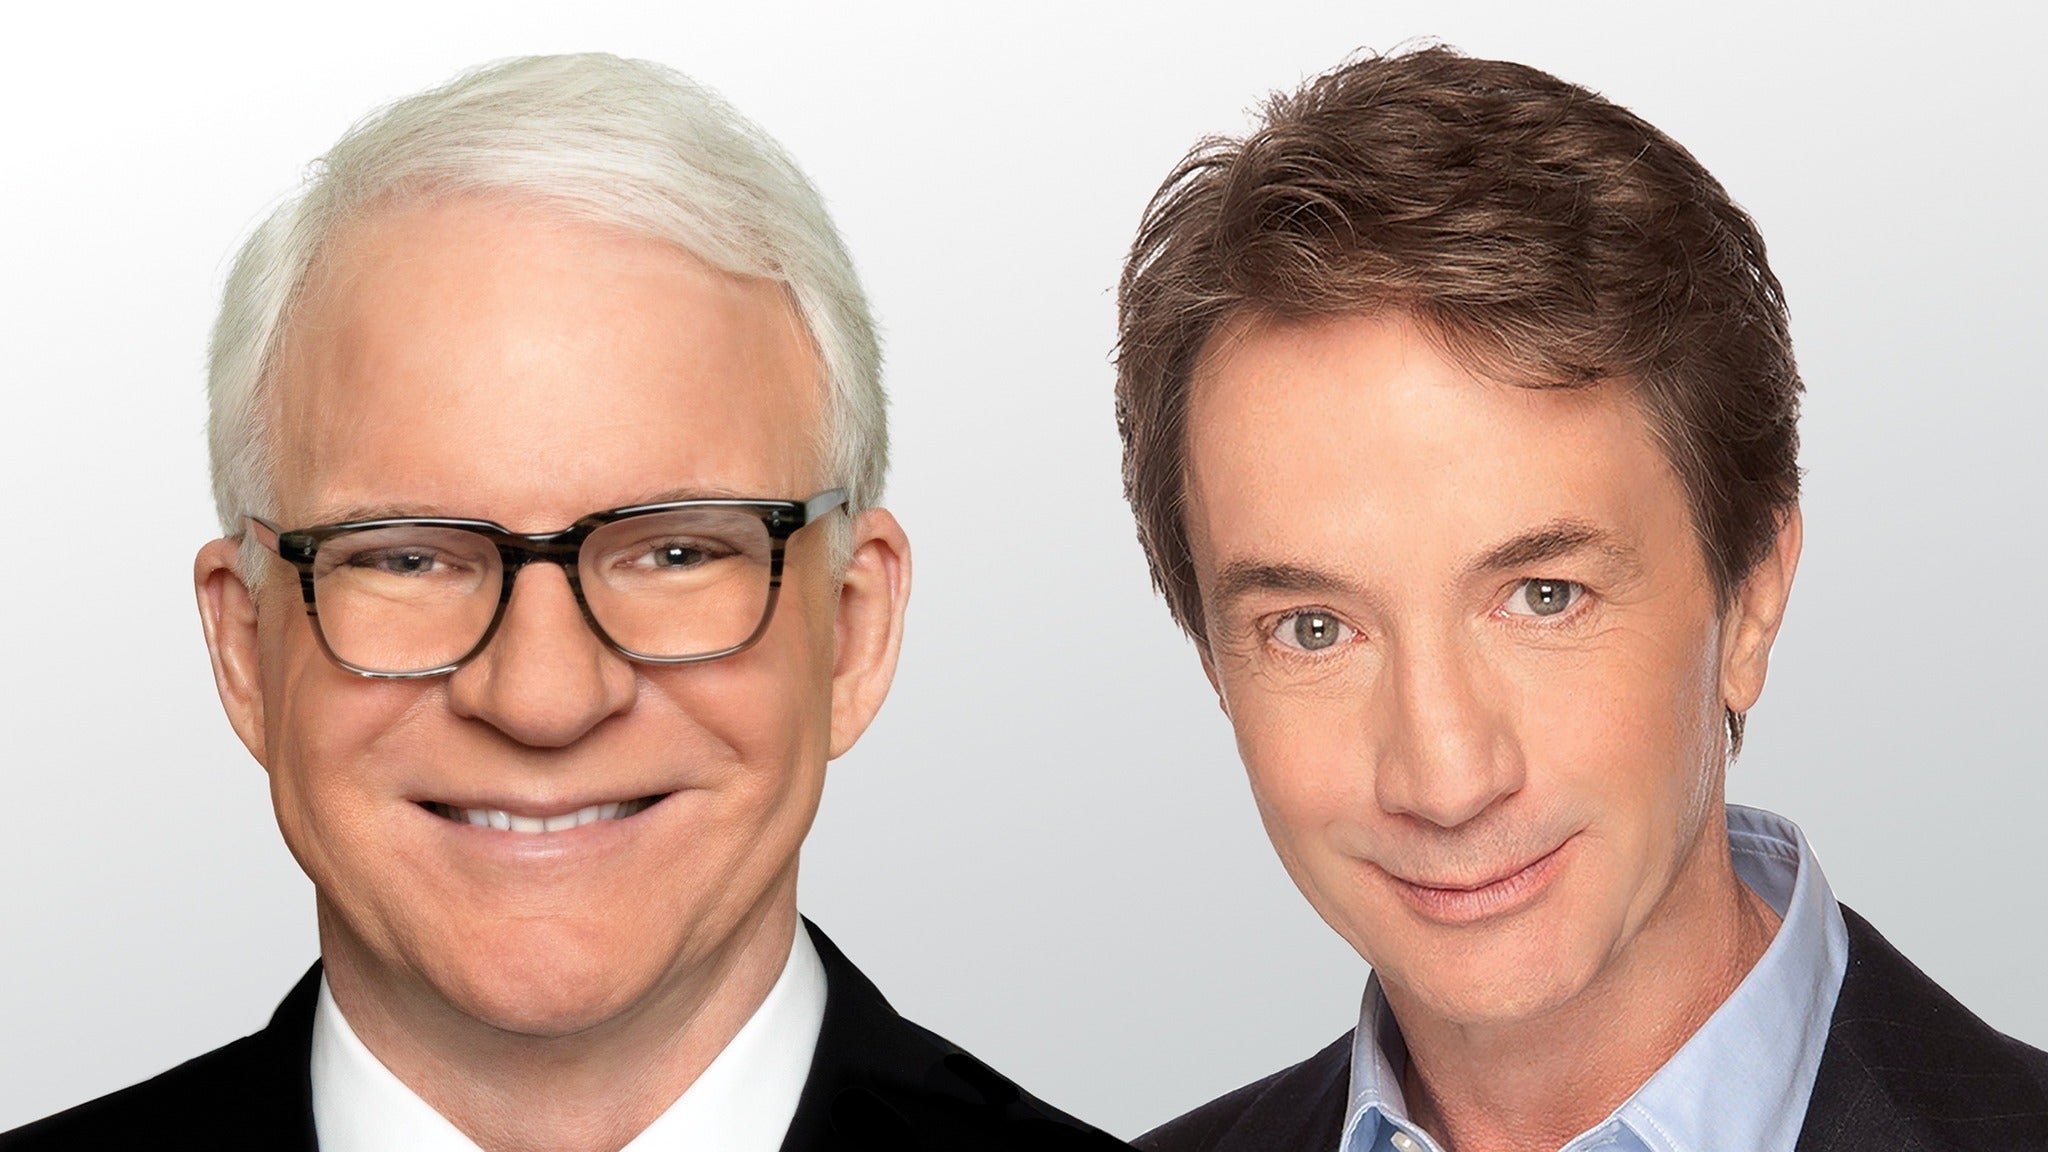 Steve Martin & Martin Short at Stephens Auditorium